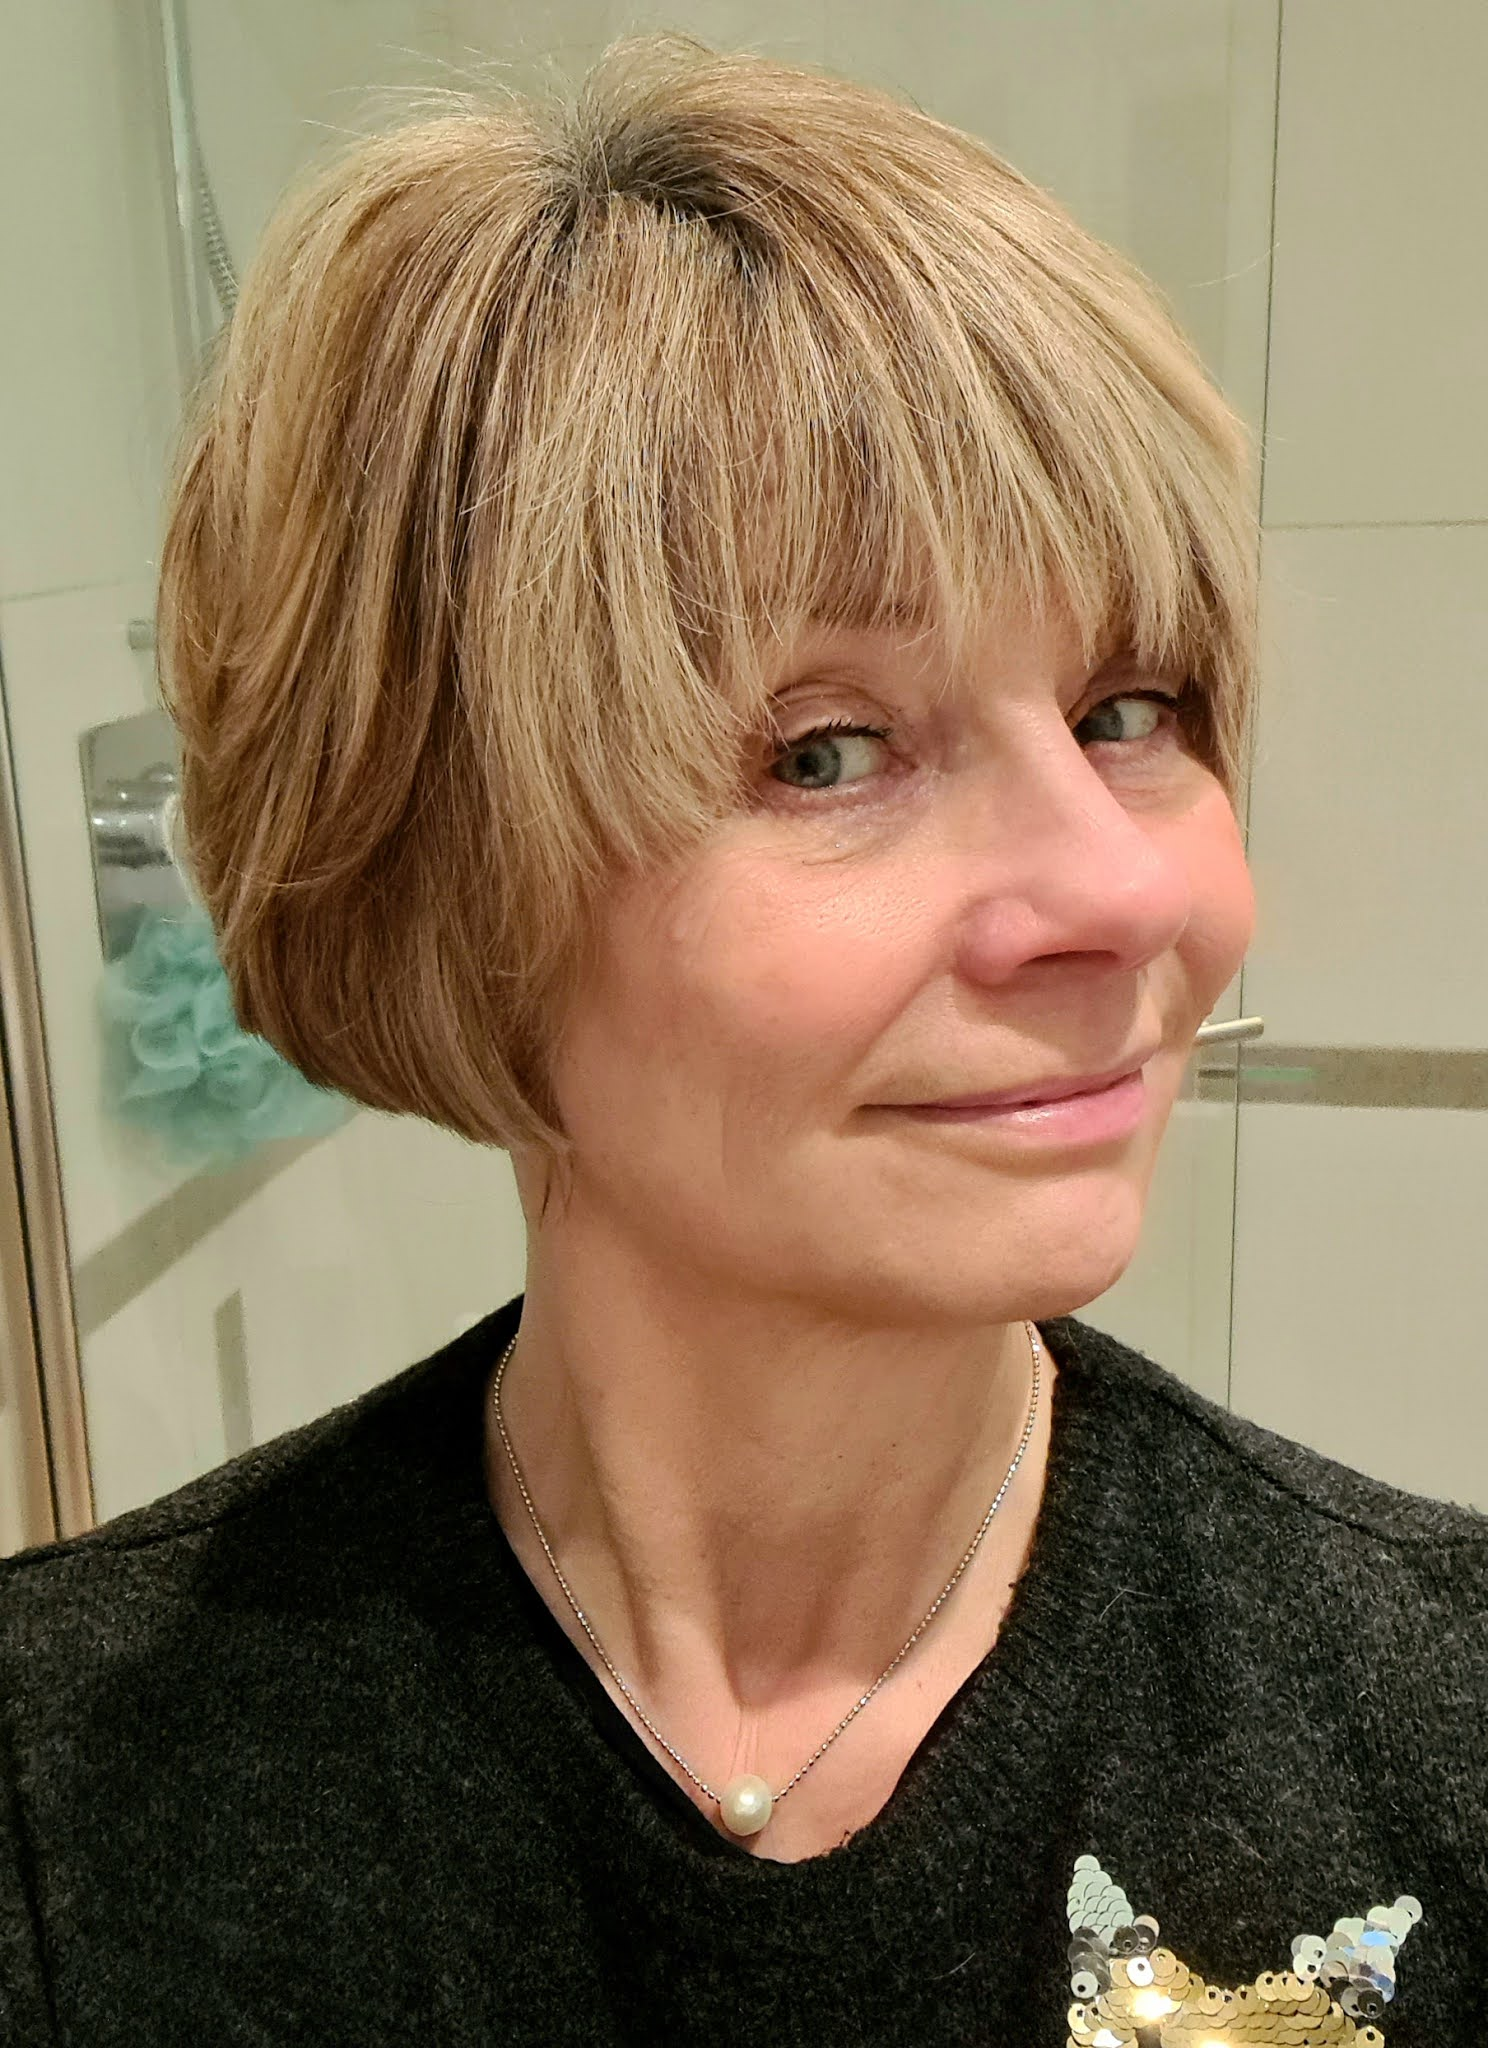 Over 50s style blogger Gail Hanlon from Is This Mutton after a hair cut at Toni and Guy, Epping, Dexember 2020